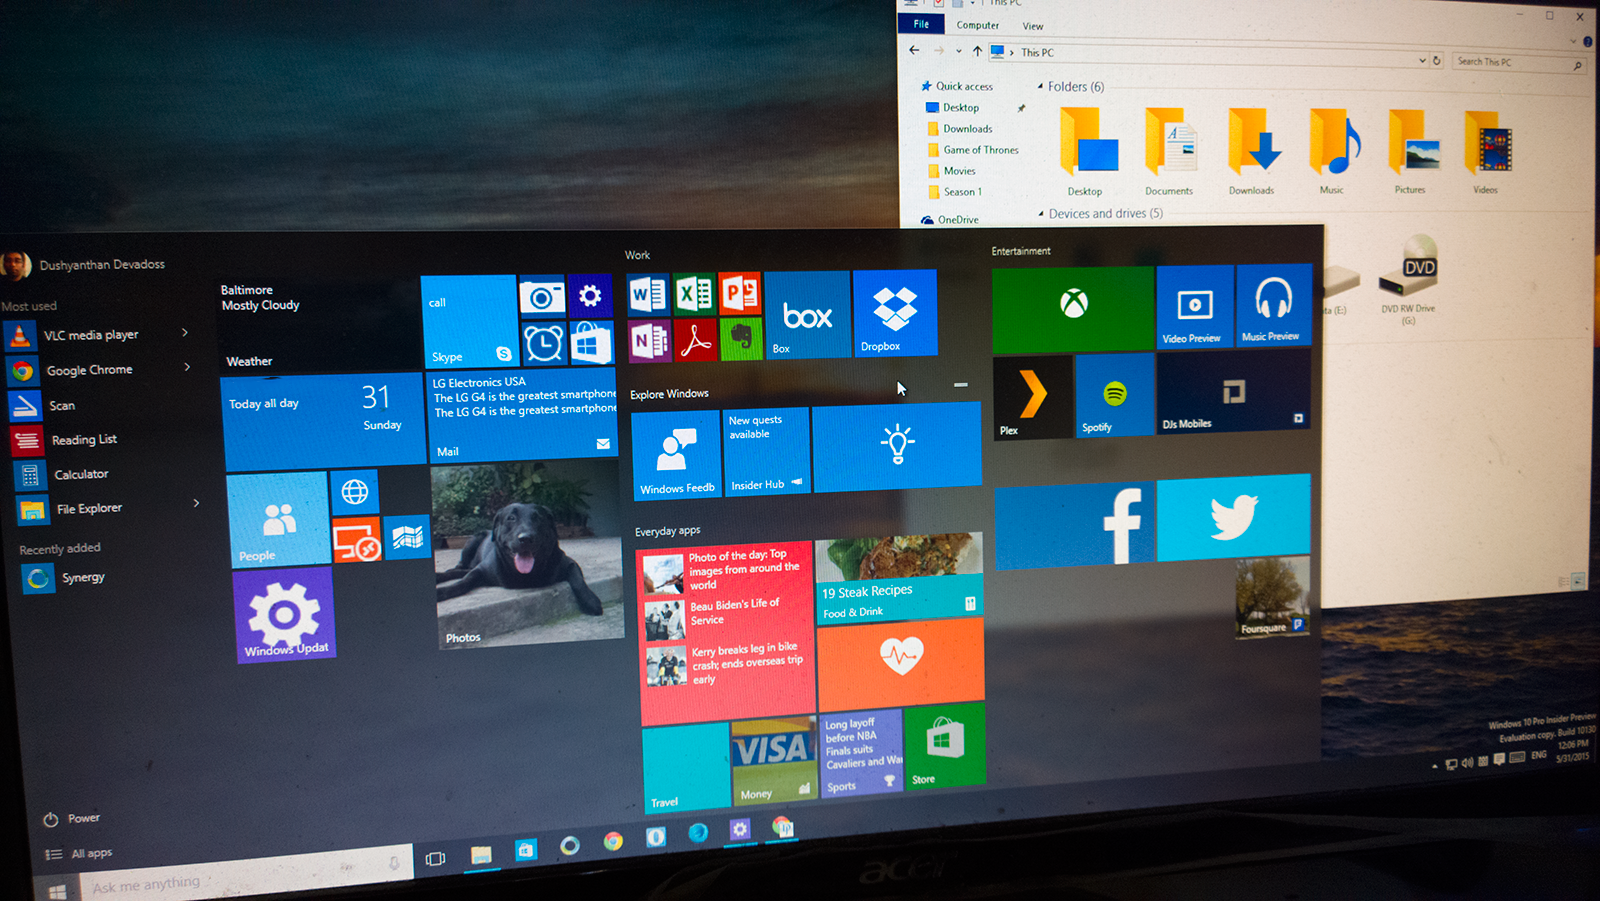 Microsoft has released windows 10 build 10041 to users registered in microsoft has released windows 10 build 10041 to users registered in the windows 10 insider program fast ring here are all the details pinterest ccuart Image collections